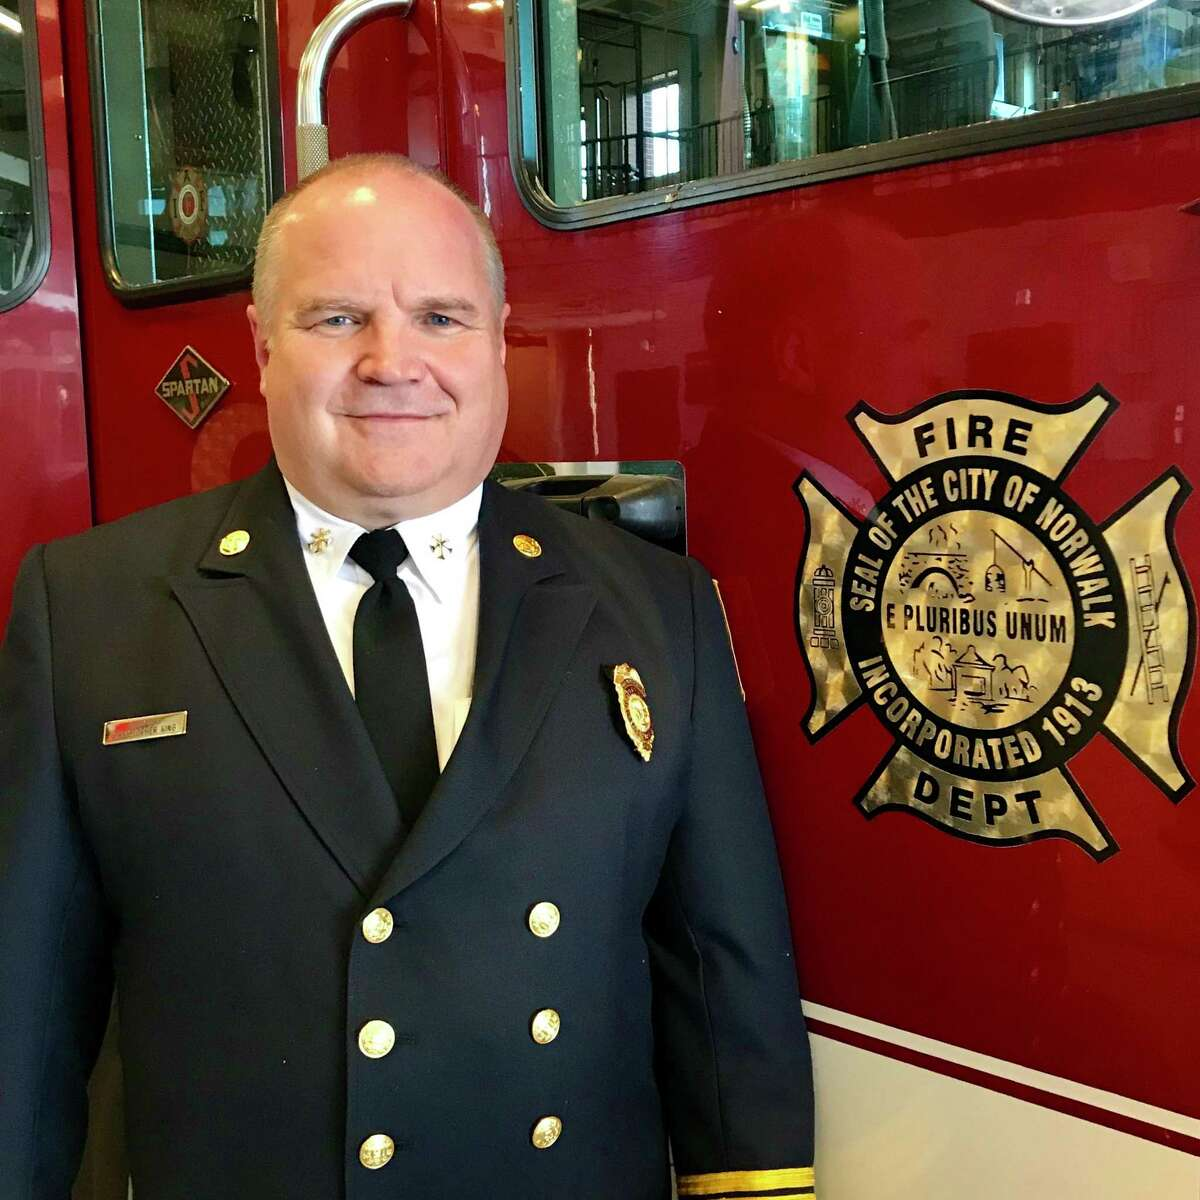 Former Norwalk Assistant Fire Chief Chris King retired in July after he and his son were the focus of an investigation into apparent cheating on the department's entrance exam.